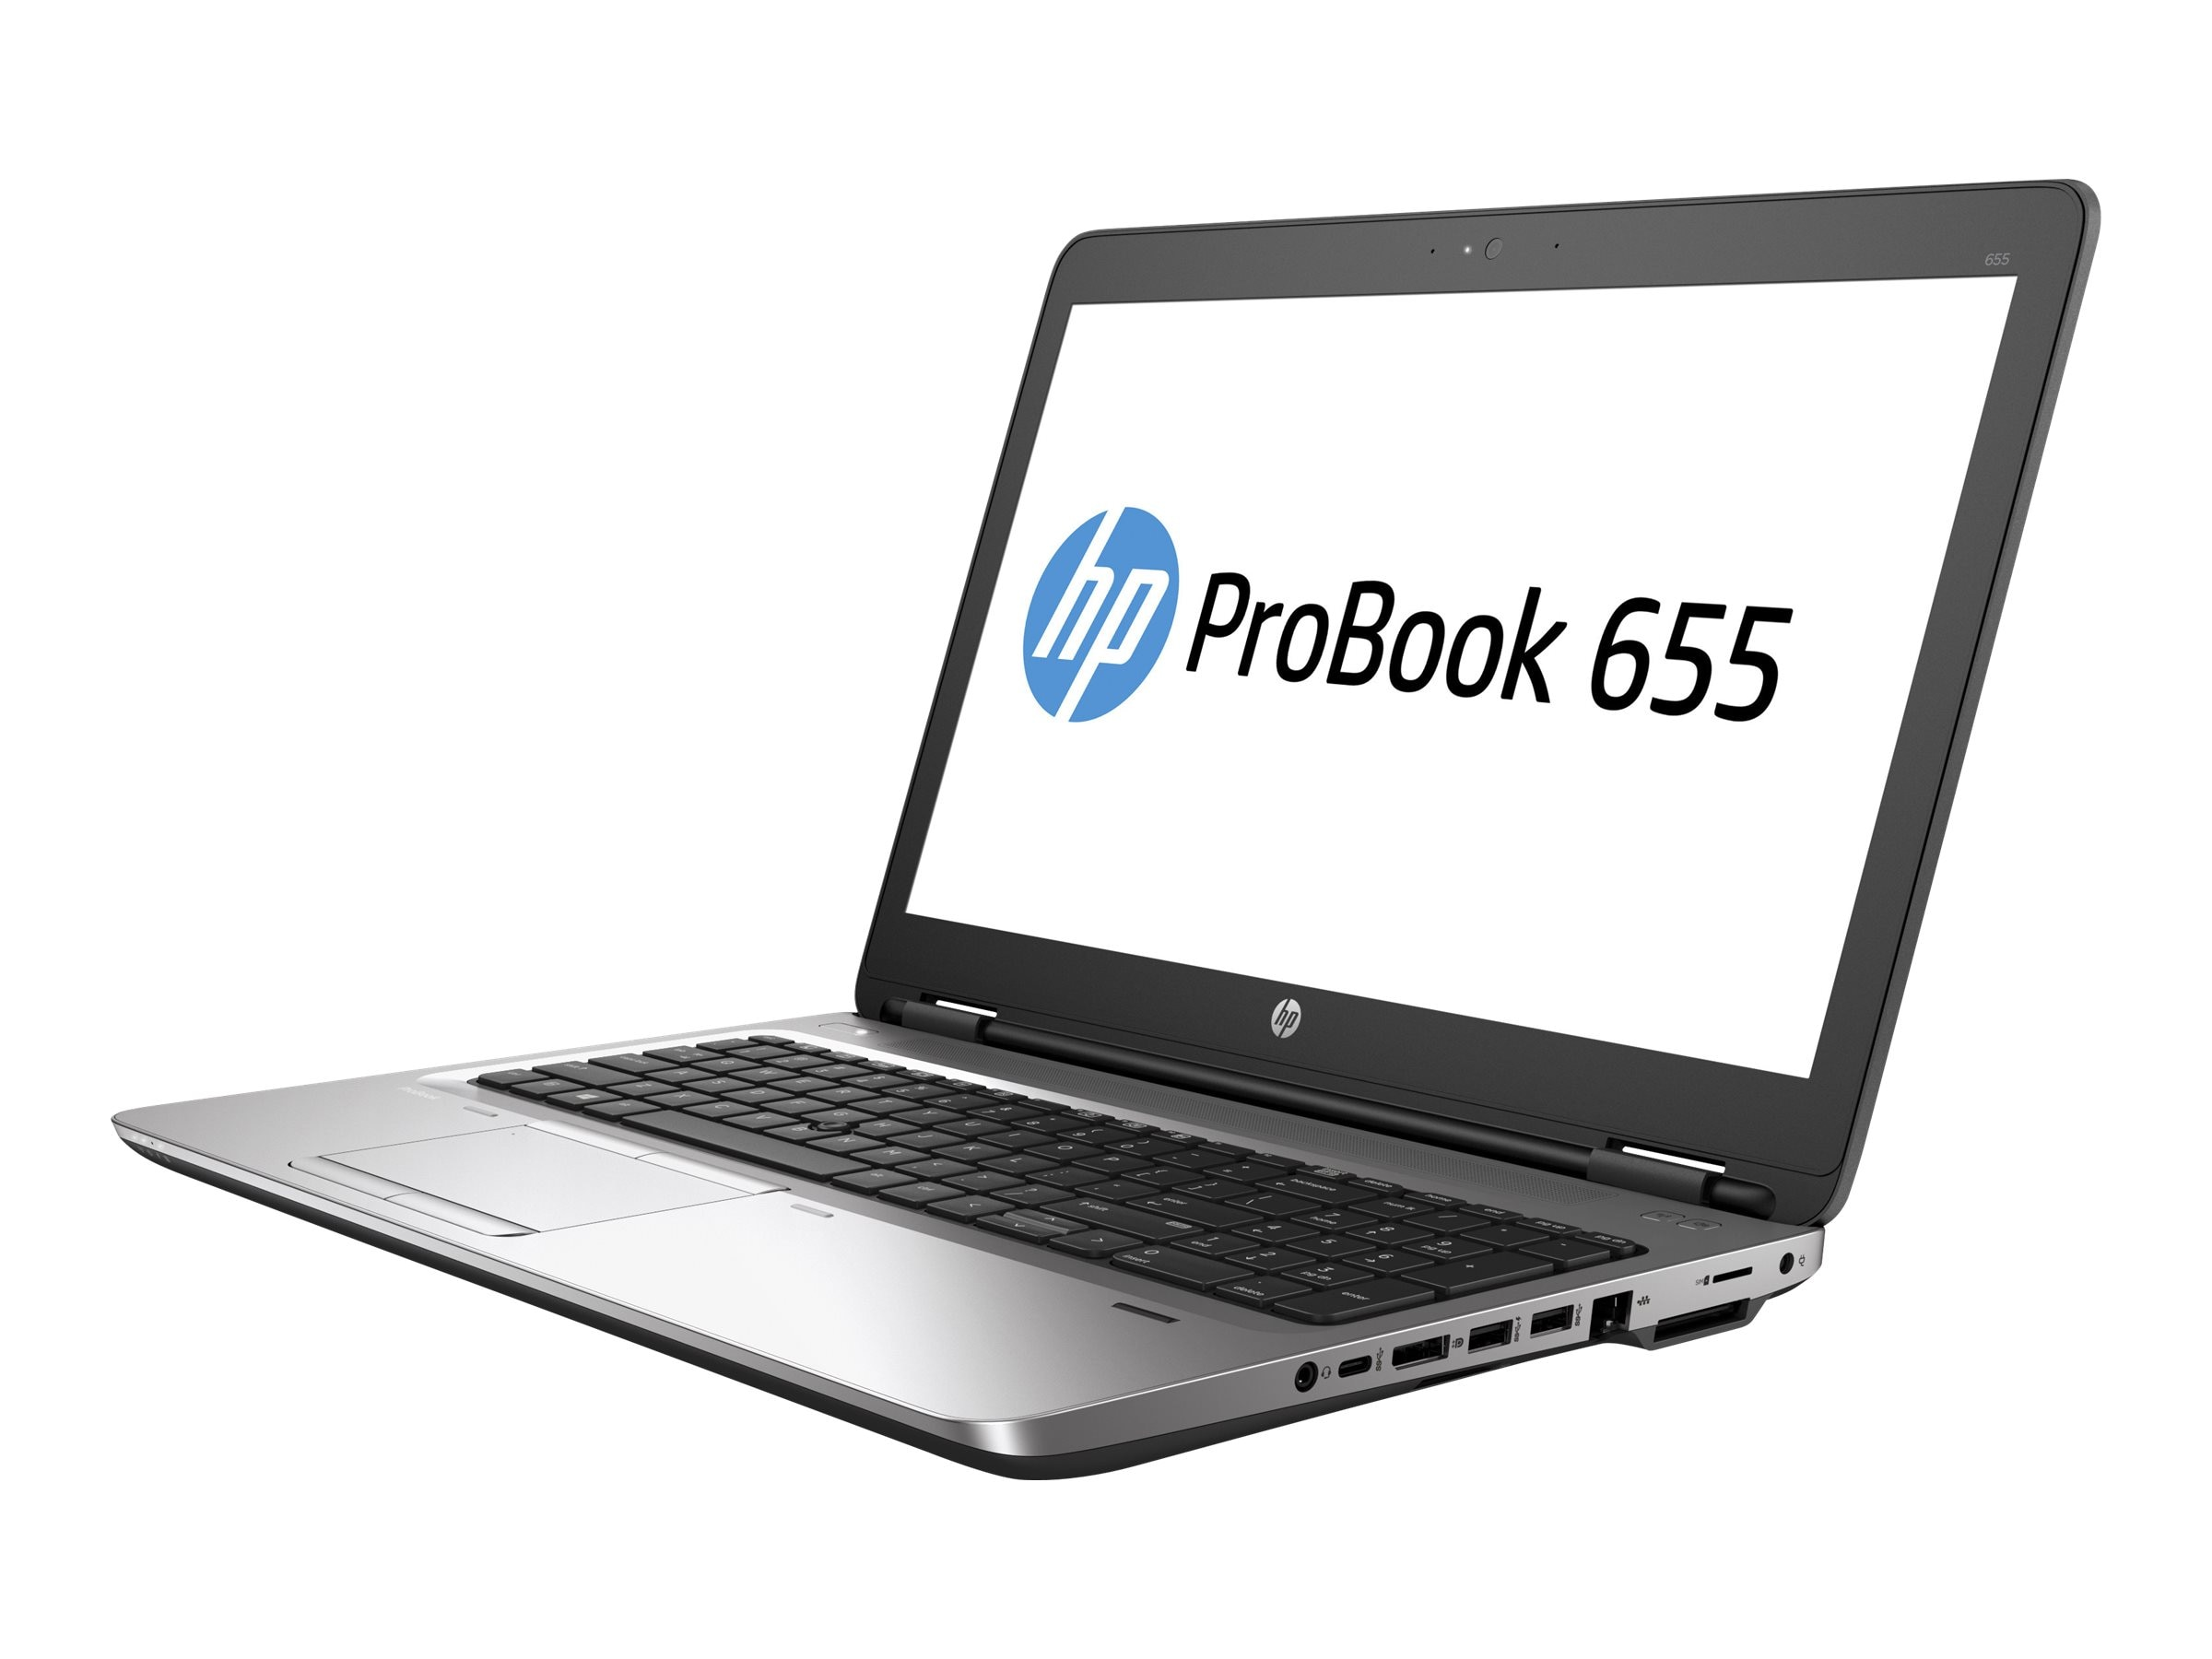 HP Smart Buy ProBook 655 G2 1.6GHz A8 Pro 15.6in display, V1P85UT#ABA, 30984291, Notebooks